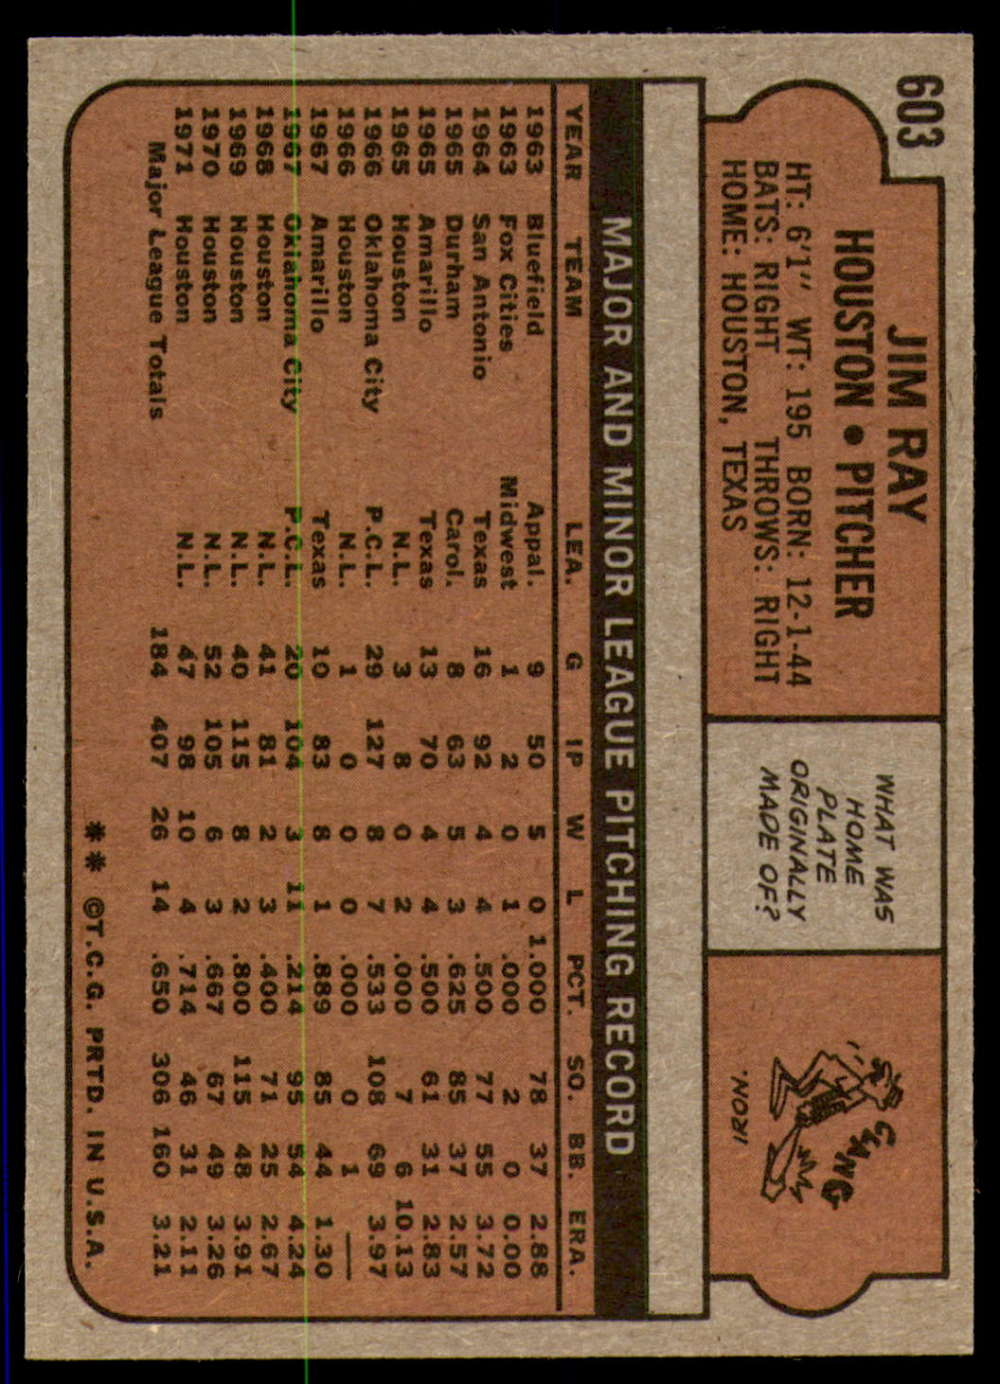 1972-Topps-Baseball-Set-497-787-Pick-Your-Card-Each-Card-Scanned-Front-amp-Back thumbnail 181